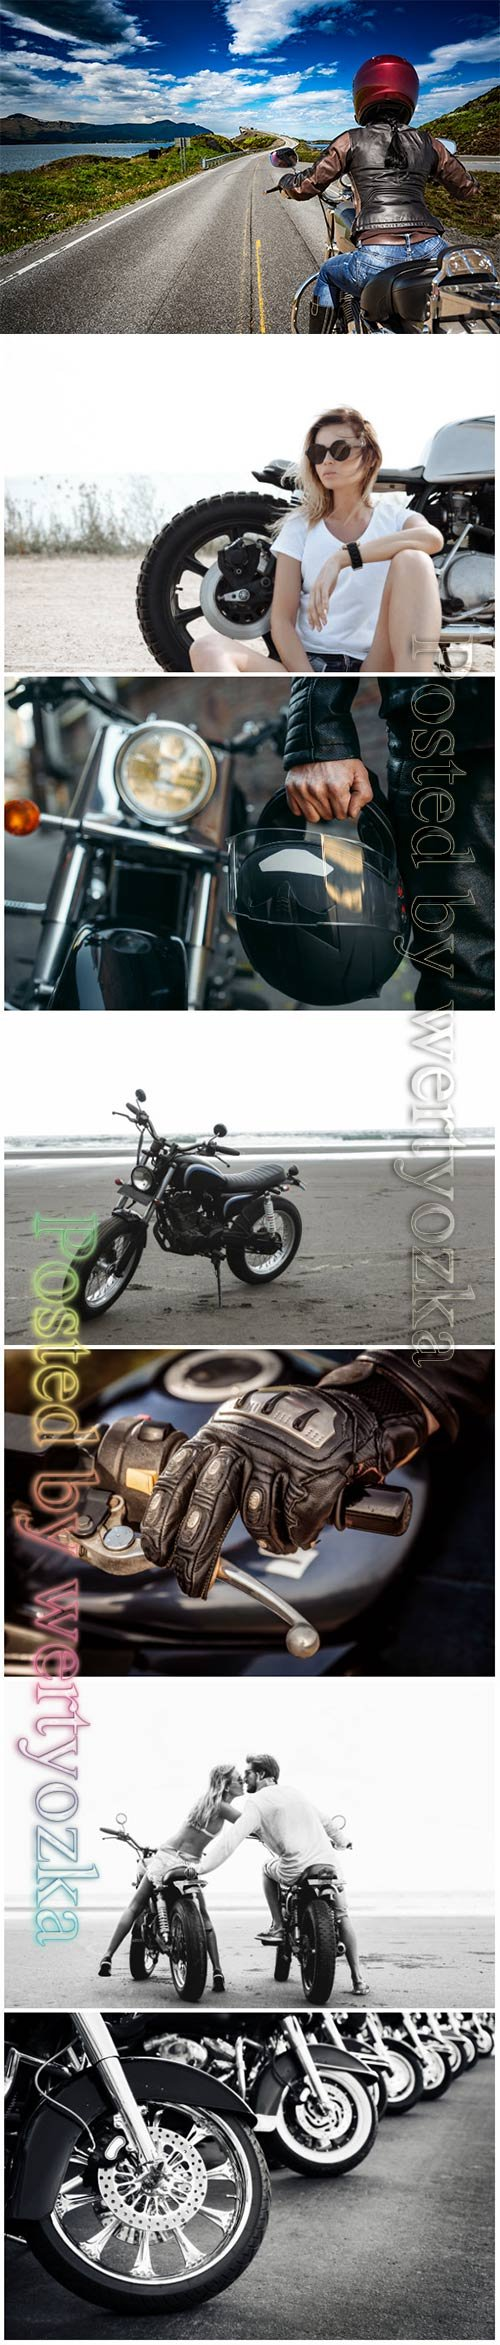 Motorcycles, biker beautiful stock photo